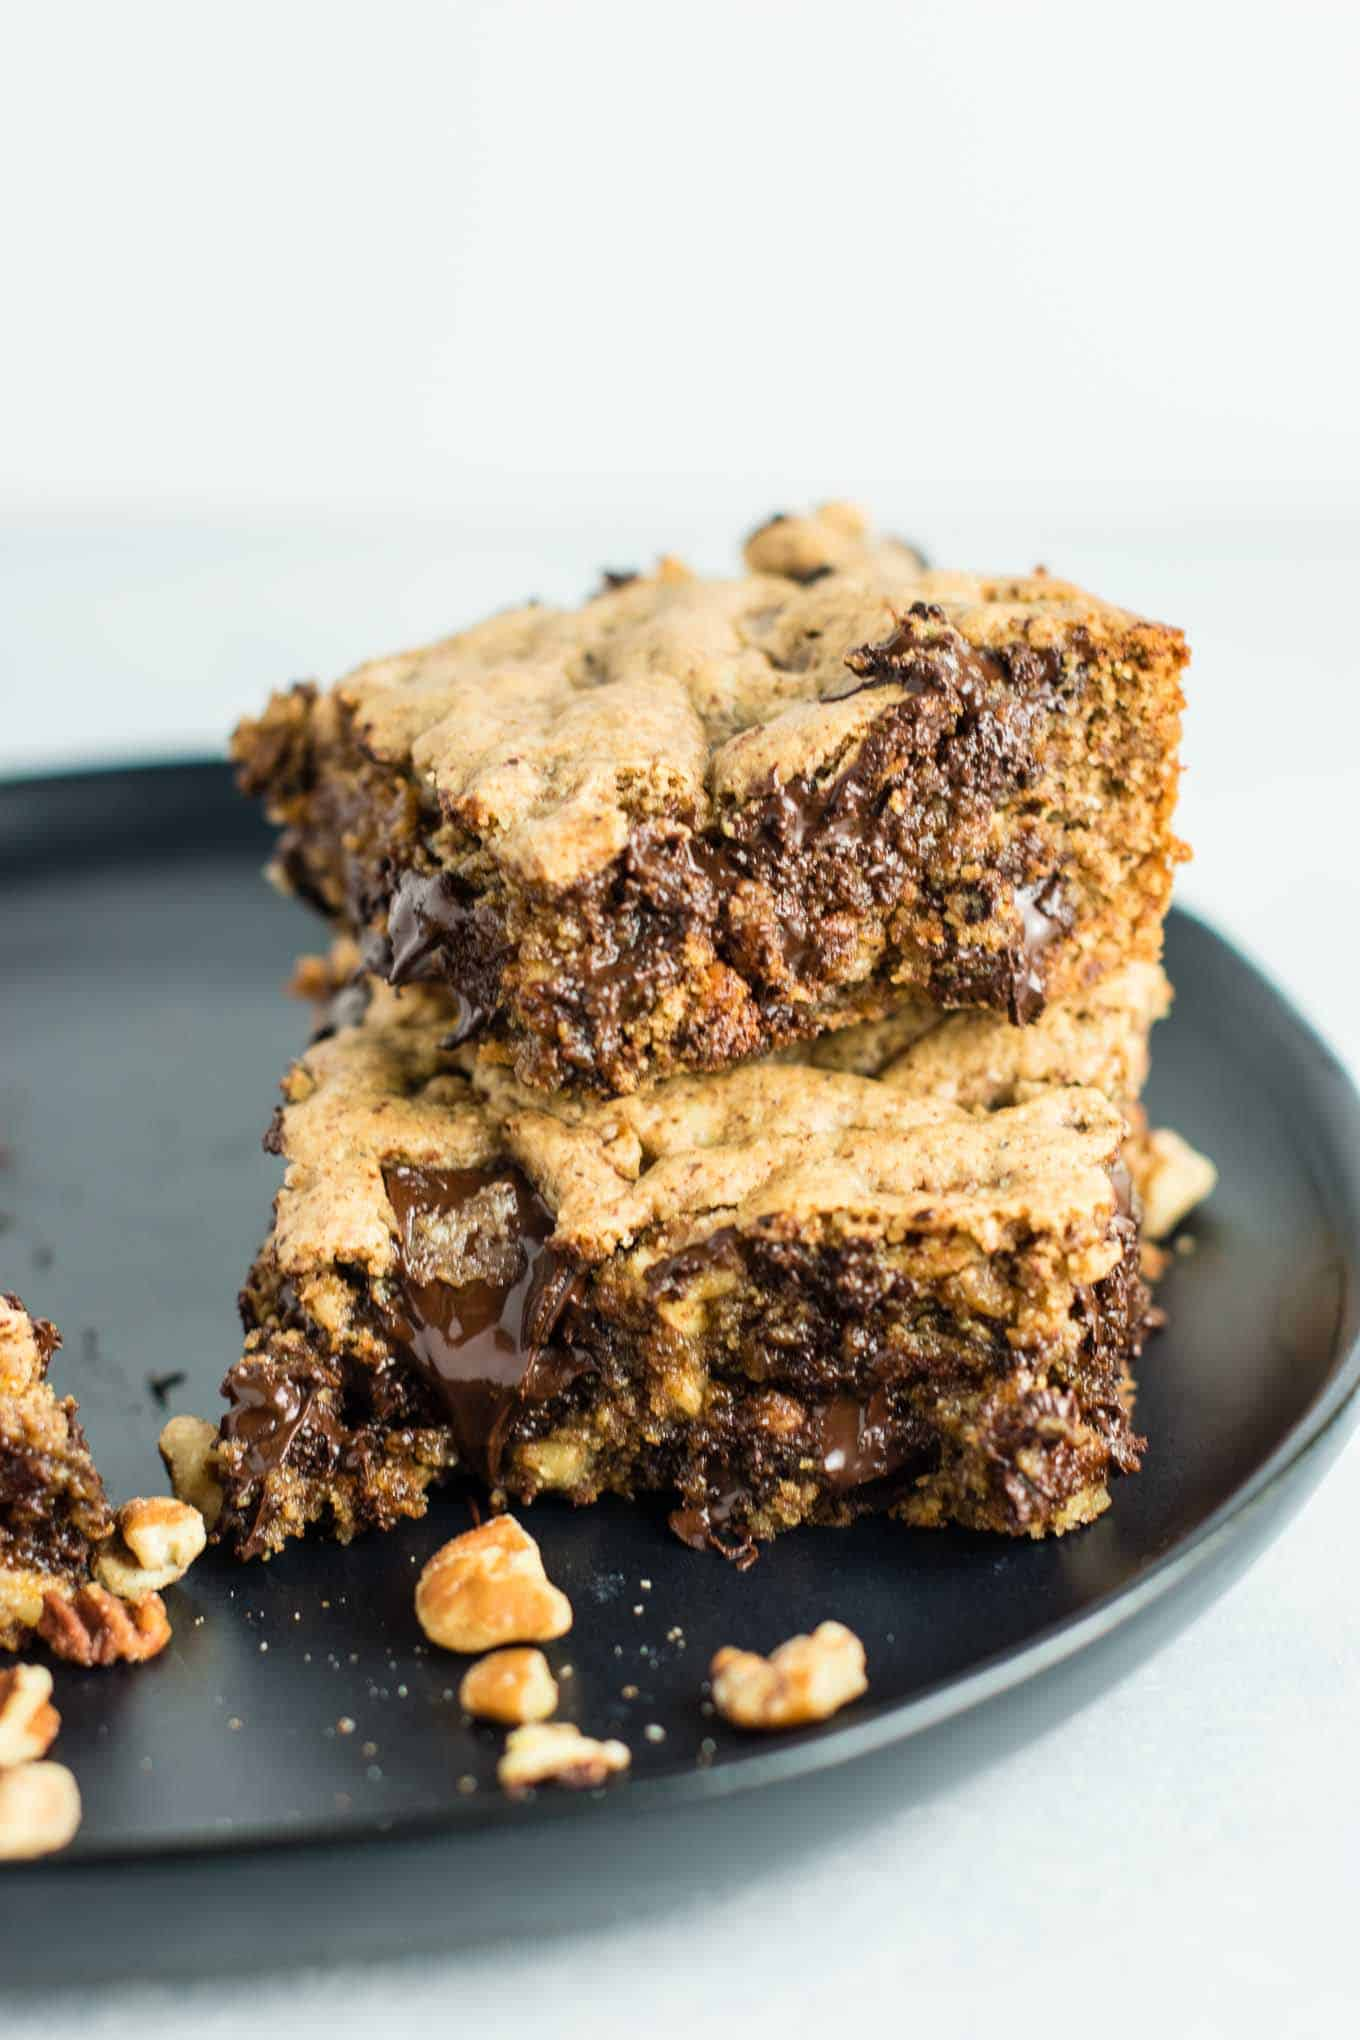 (Death by Chocolate) Dark Chocolate Pecan Cookie Bars recipe – gluten free and dairy free. You won't believe how good these are! Serve warm with a scoop of vanilla ice cream! #glutenfree #dairyfree #cookiebars #dessert #chocolate